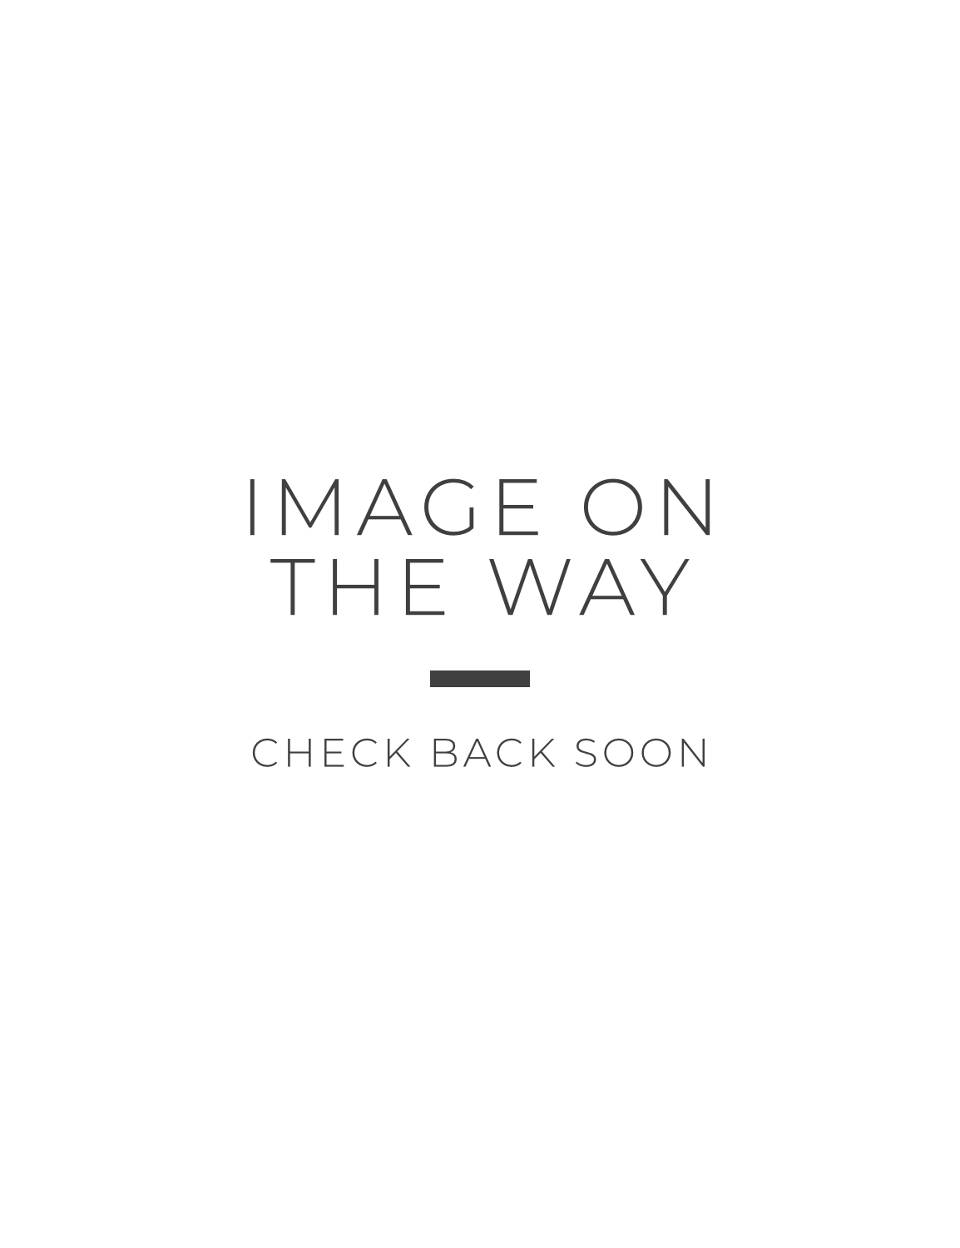 567ca8a21 Compression socks by Lane Bryant